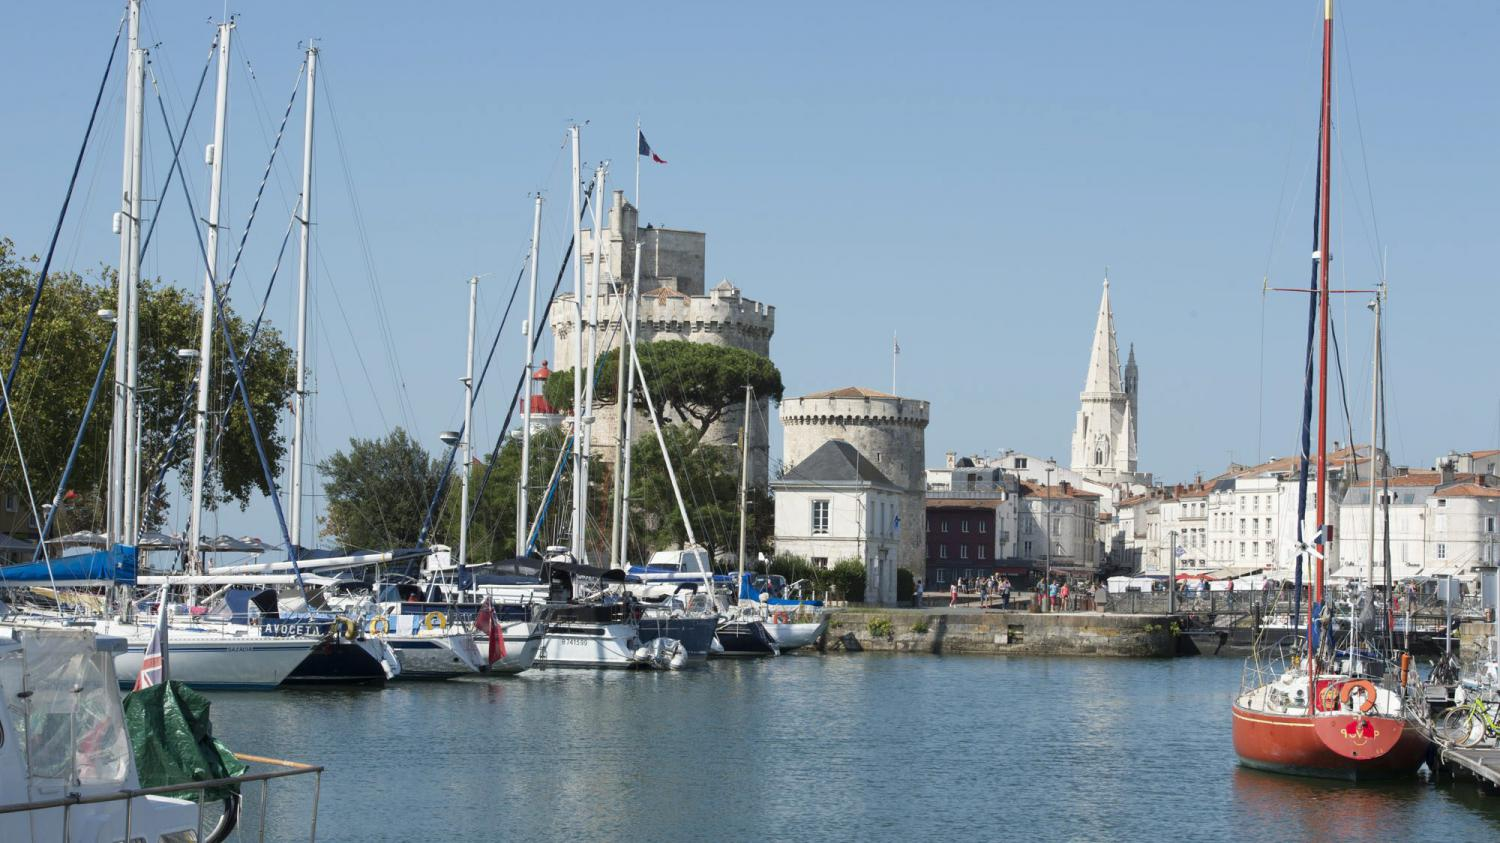 La rochelle un des plus grands ports de plaisance d 39 europe - Plus grand port de plaisance d europe ...